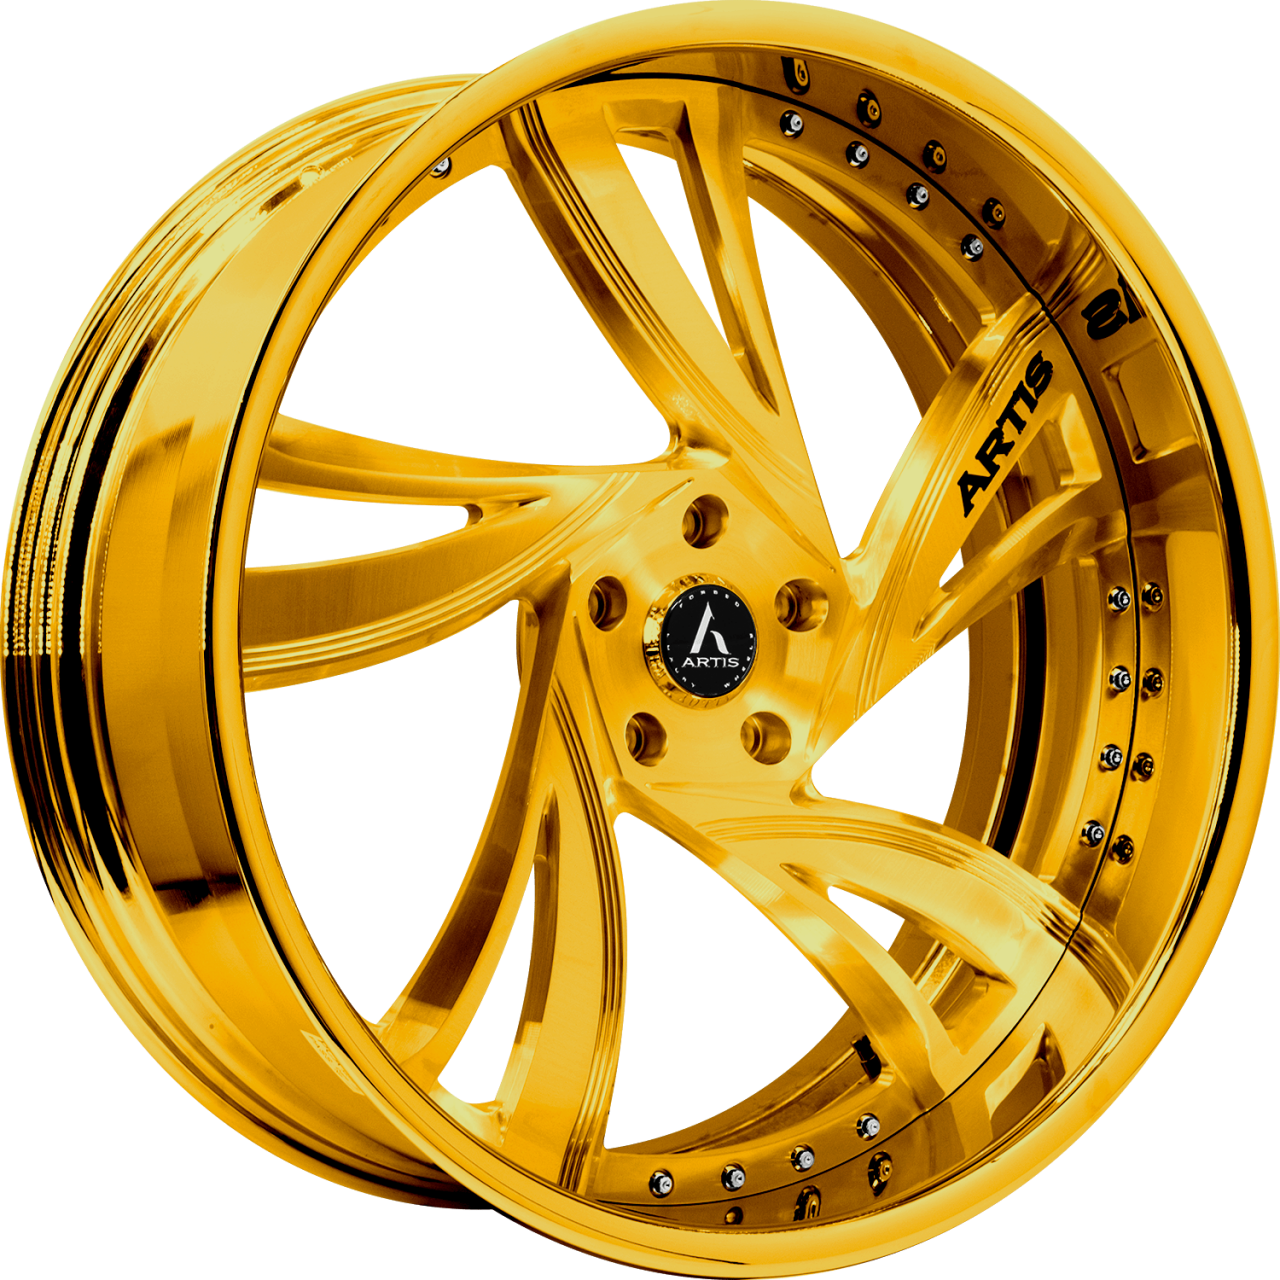 Artis Forged Kingston-M wheel with Gold finish